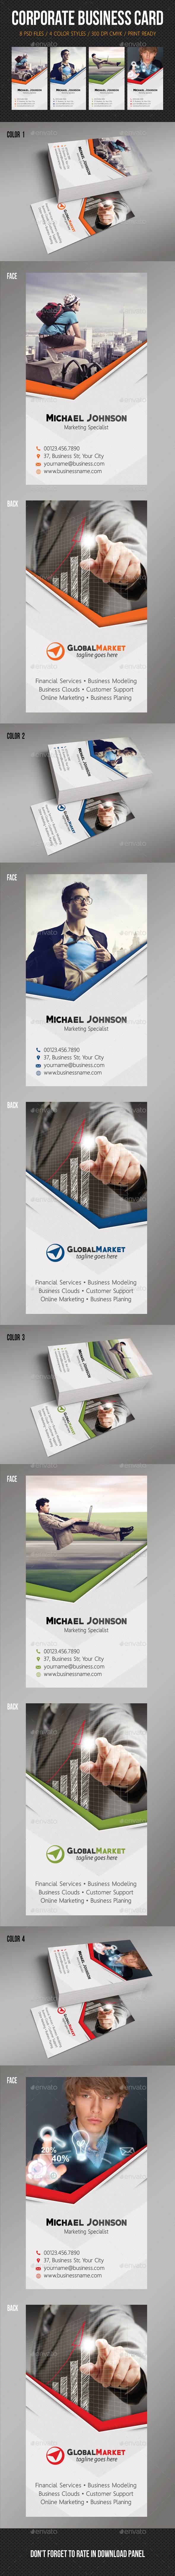 Corporate Business Card 13